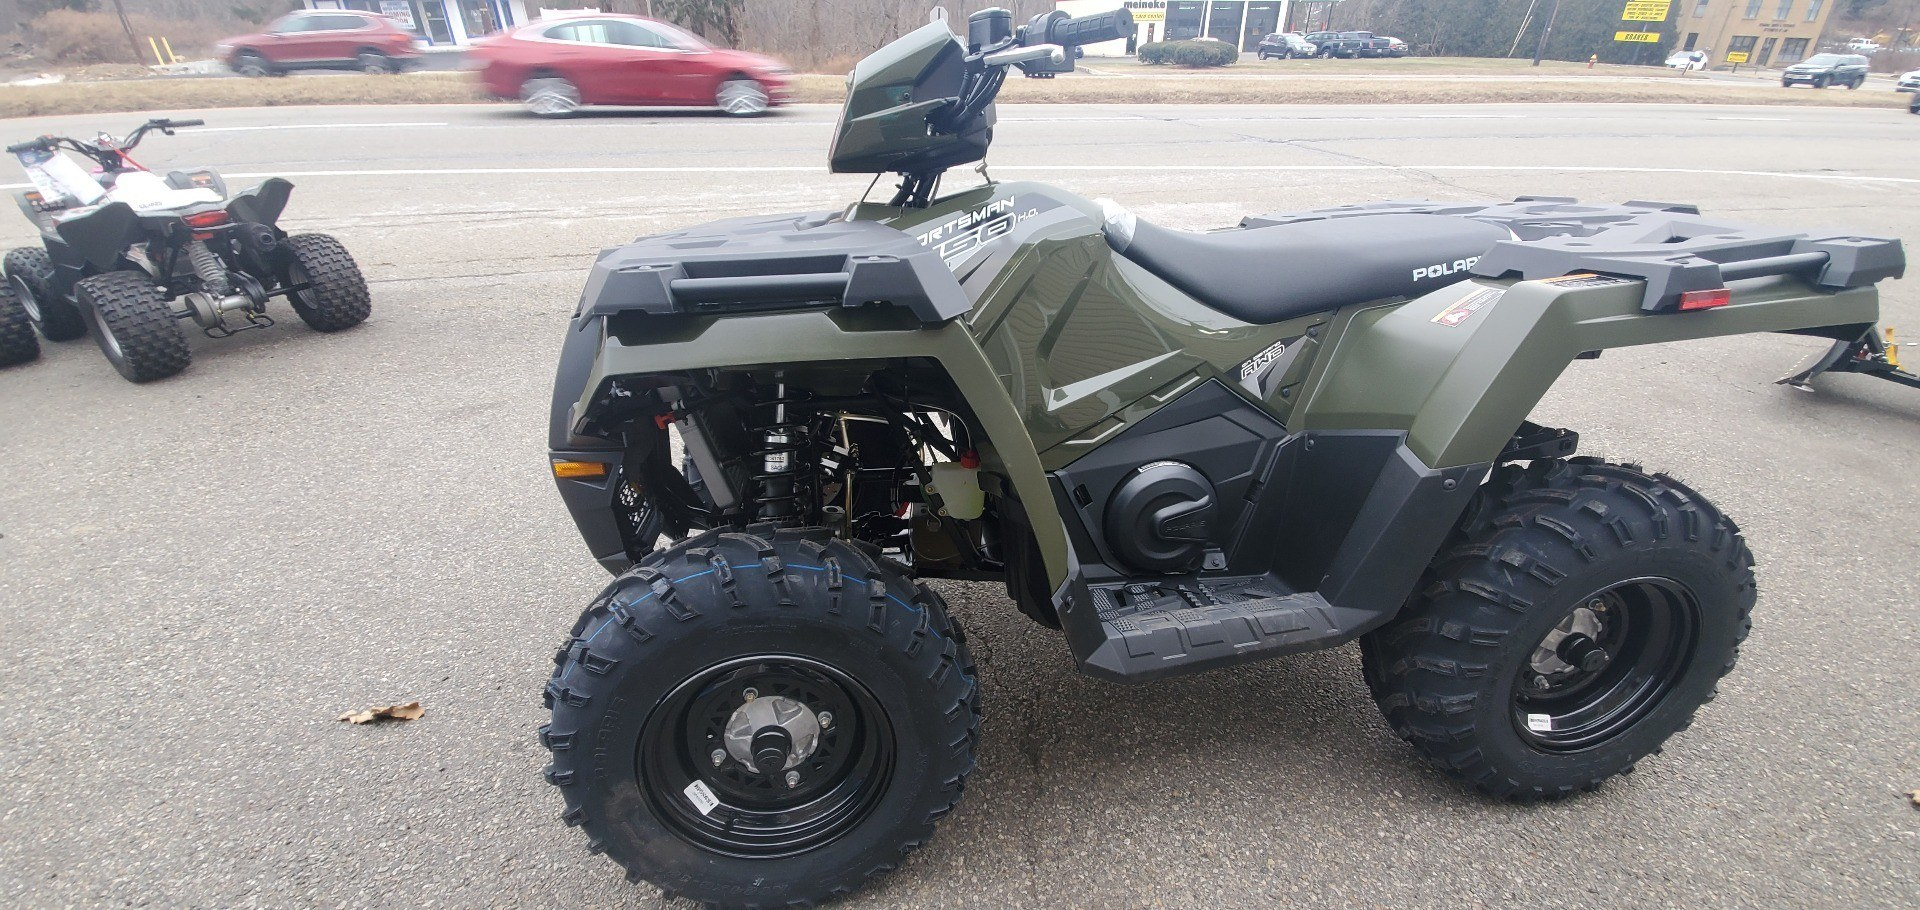 2020 Polaris Sportsman 450 H.O. in Ledgewood, New Jersey - Photo 5